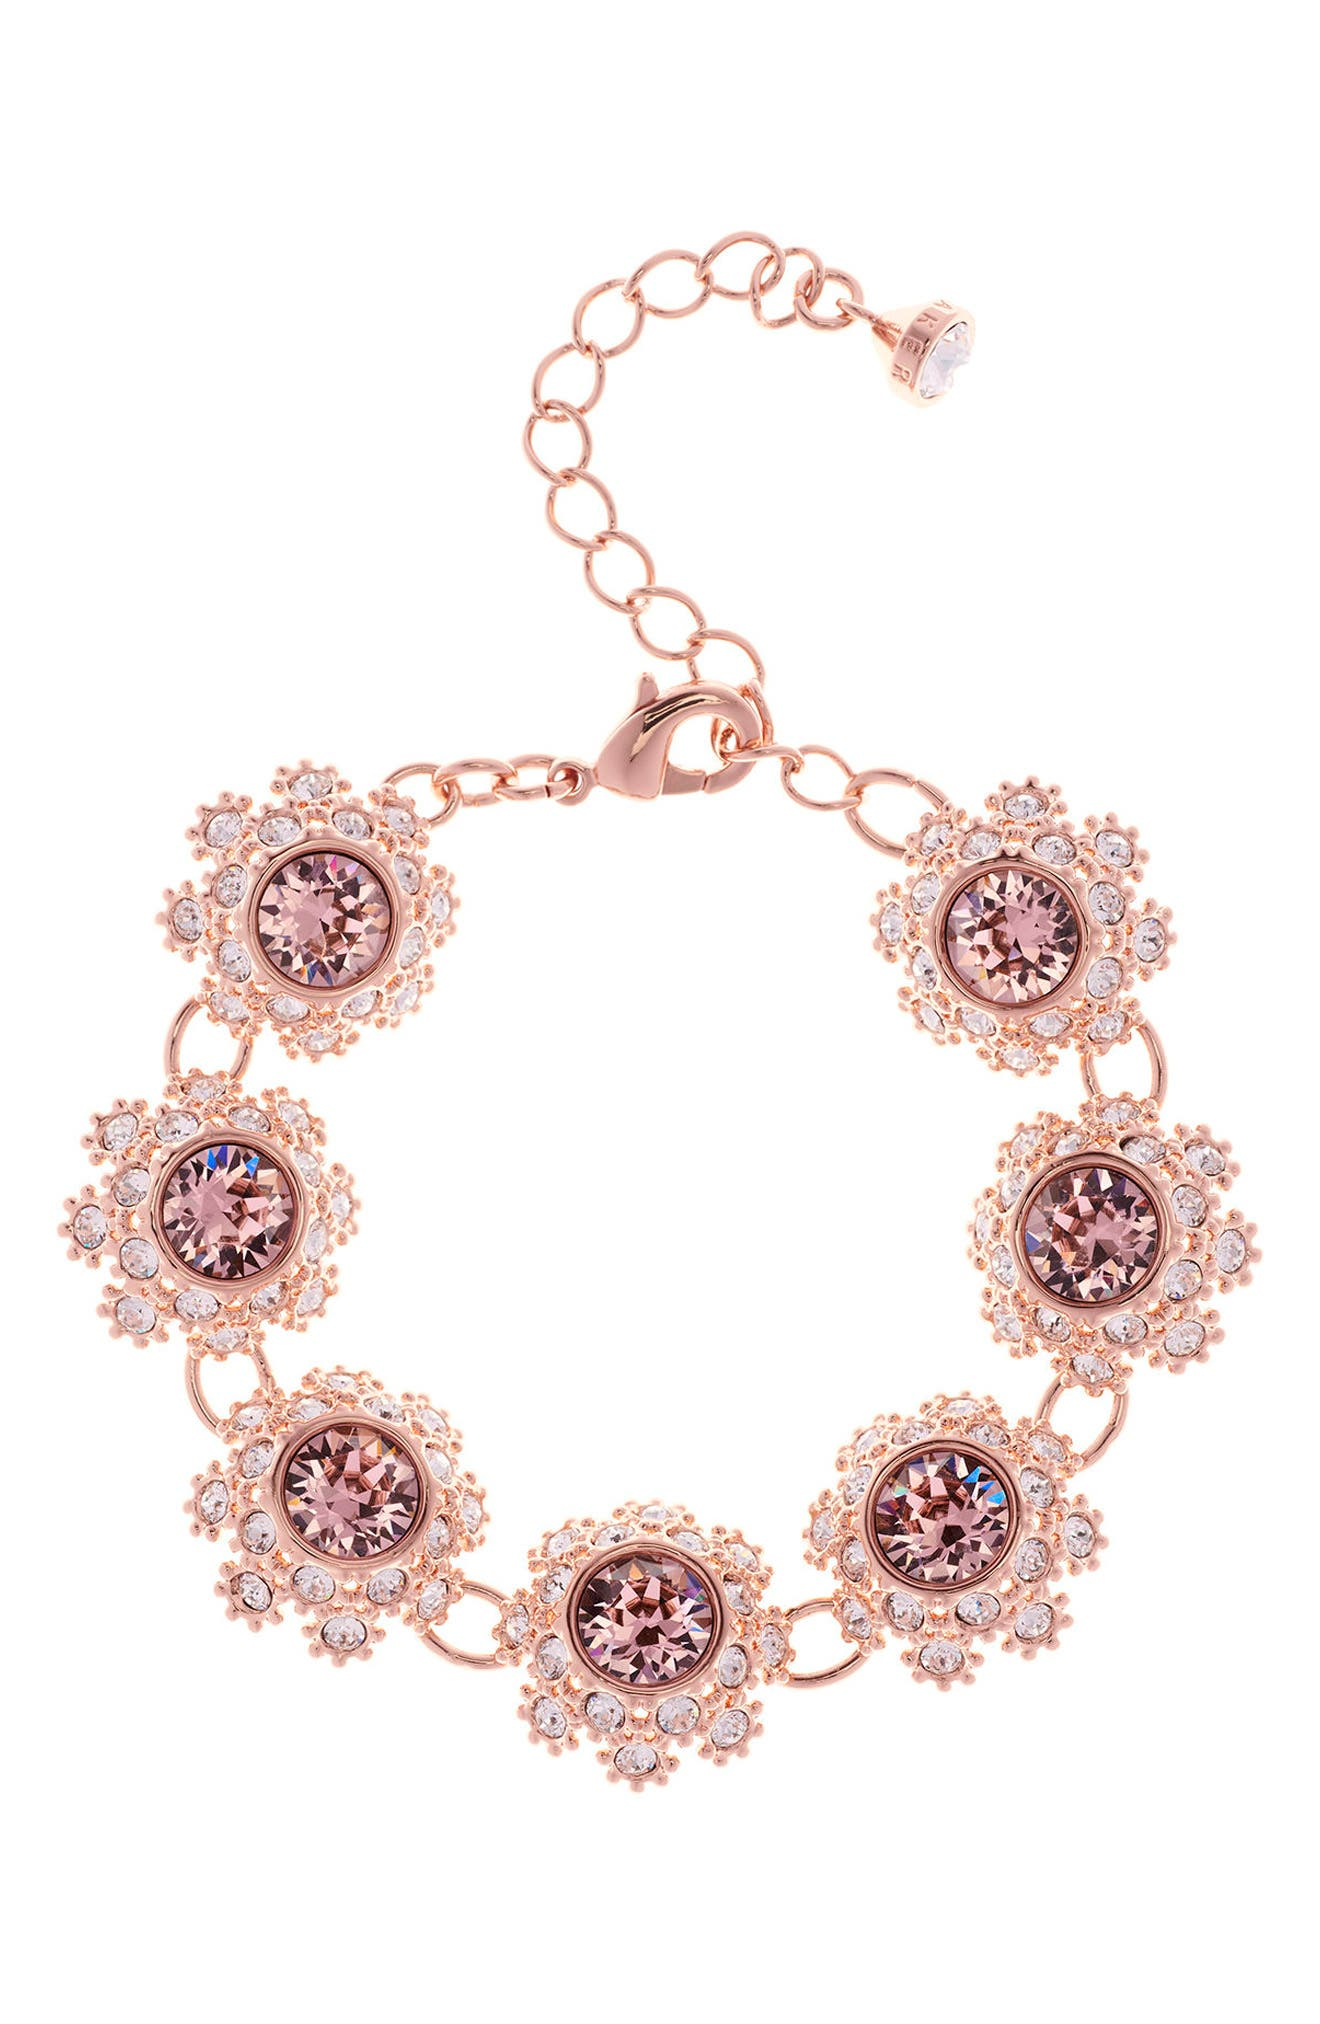 Crystal Daisy Lace Station Bracelet,                             Main thumbnail 1, color,                             660